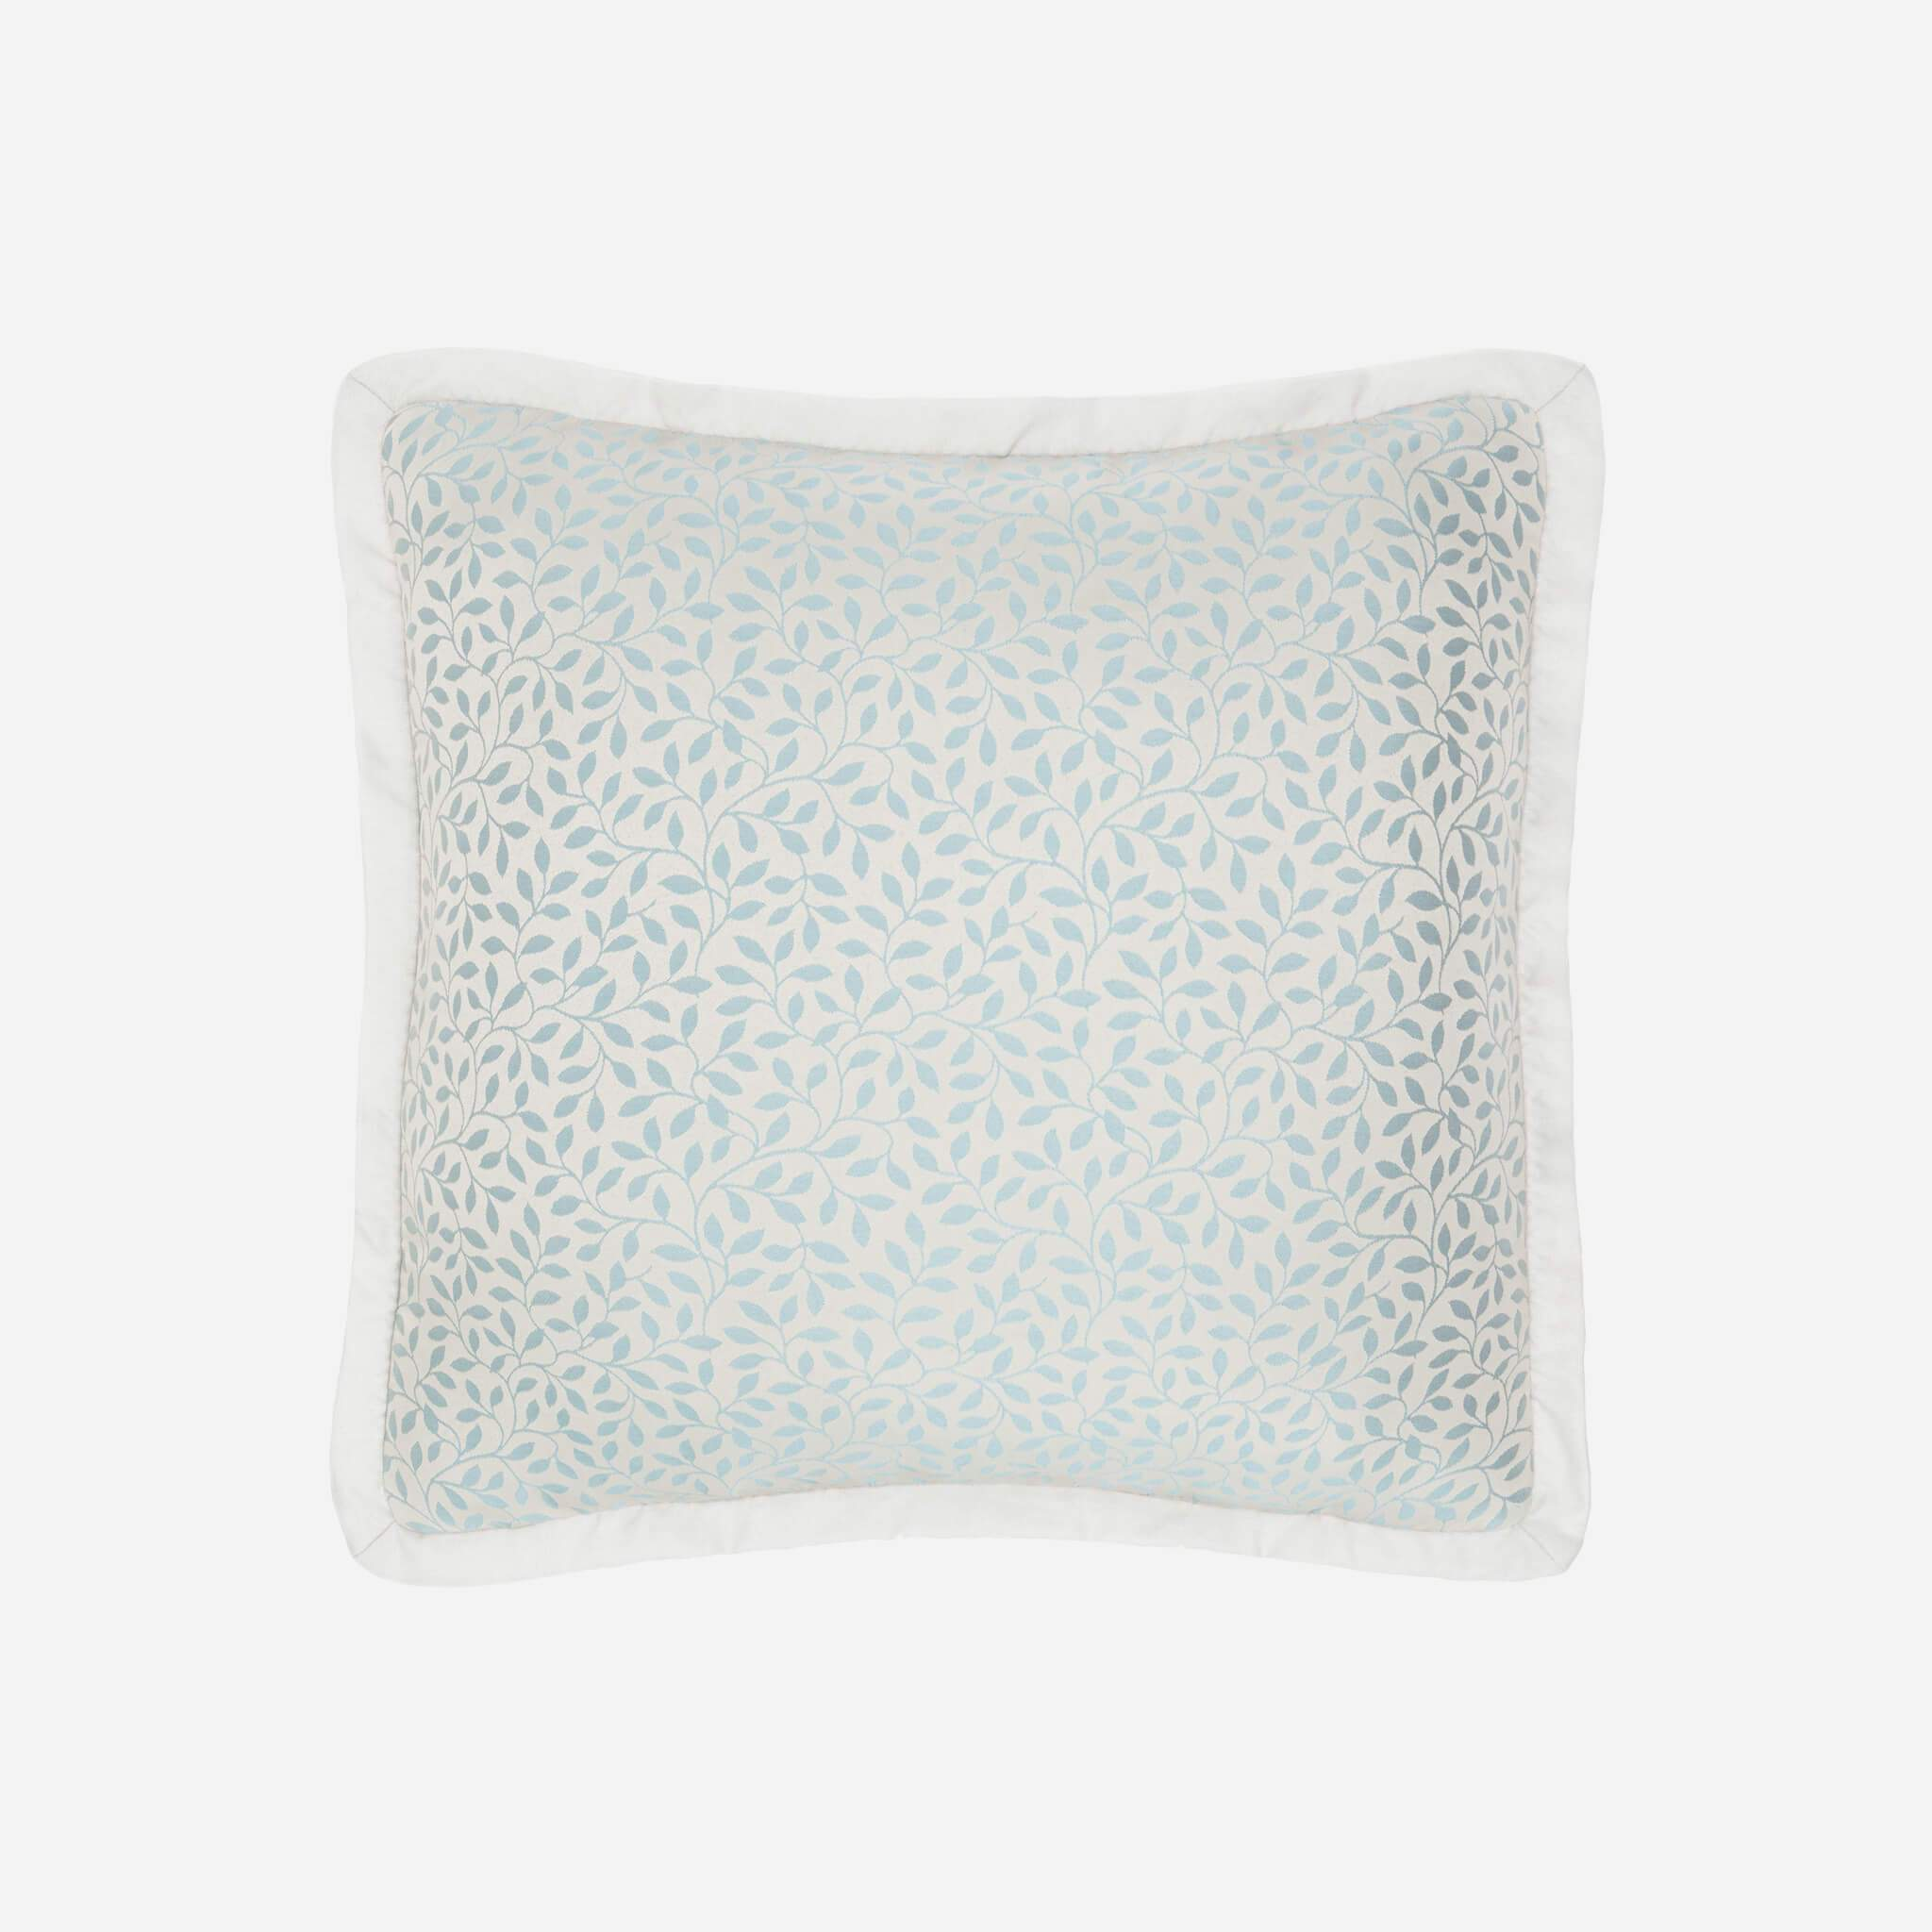 Dianella Square Pillow